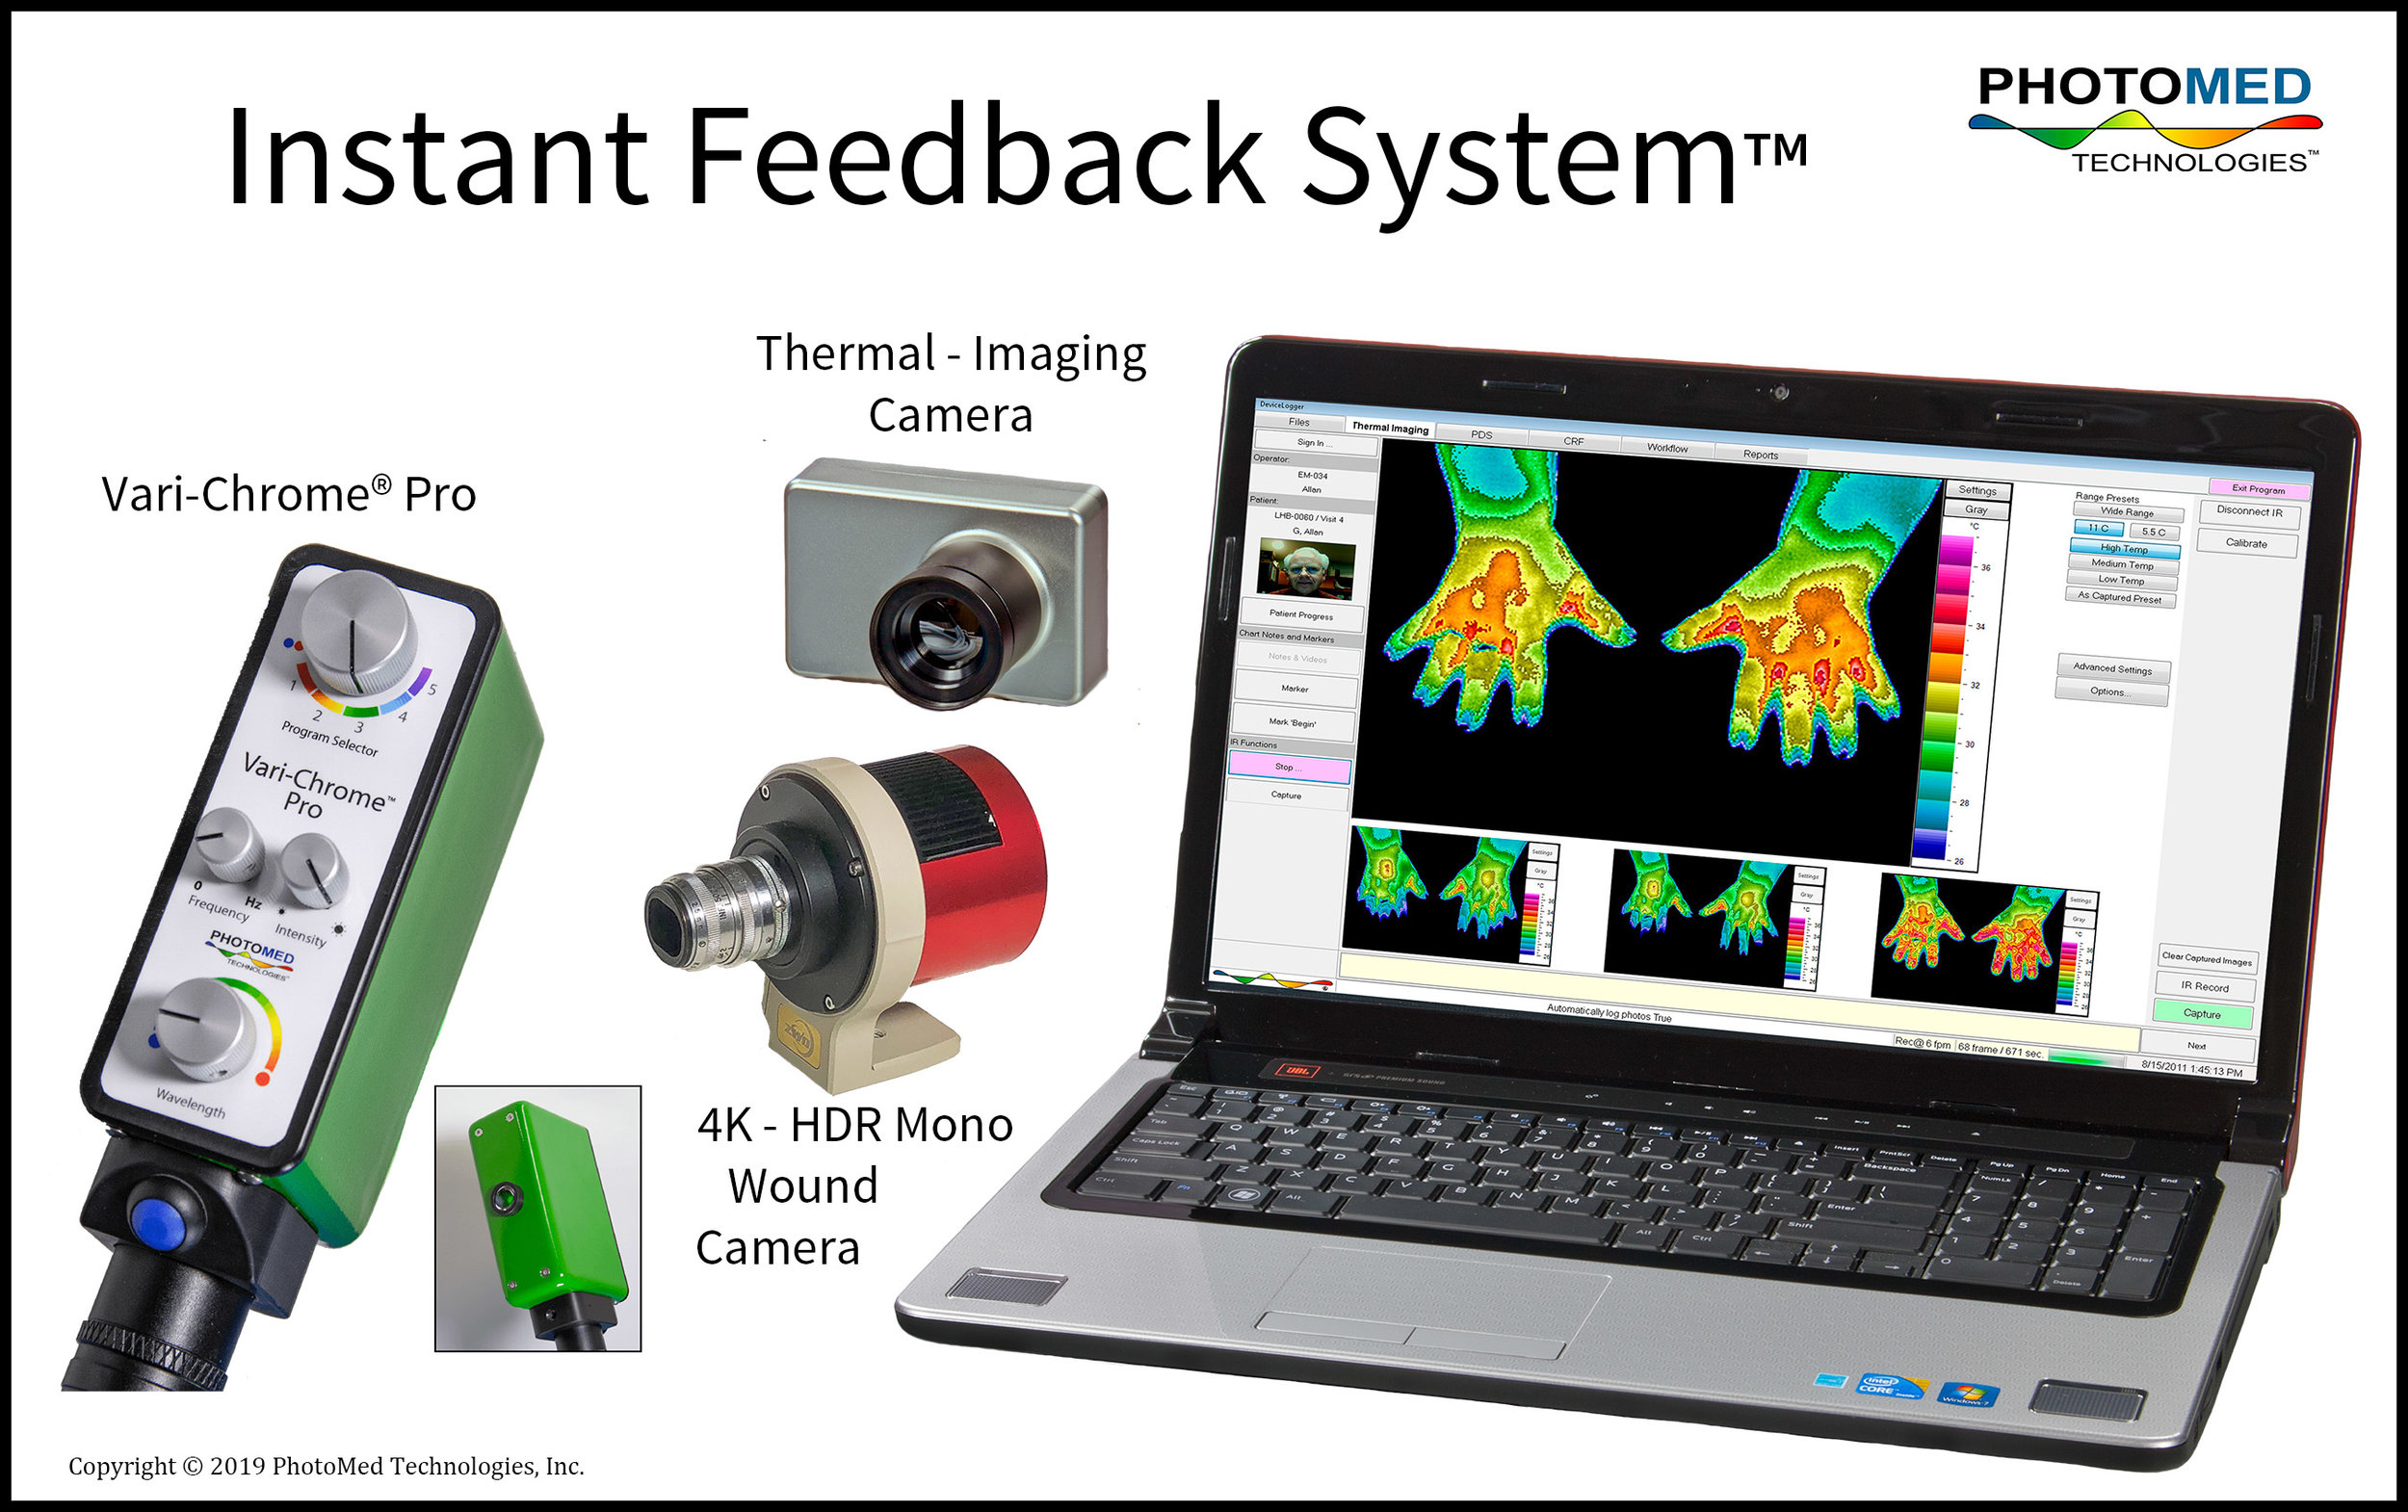 The  Instant Feedback System ™ is the first system to prompt and record physiological responses to different wavelengths of light applied to the same person. The Platform evolved to meet changing needs to associate the responses and outcomes among people and the clinics where the data was collected.